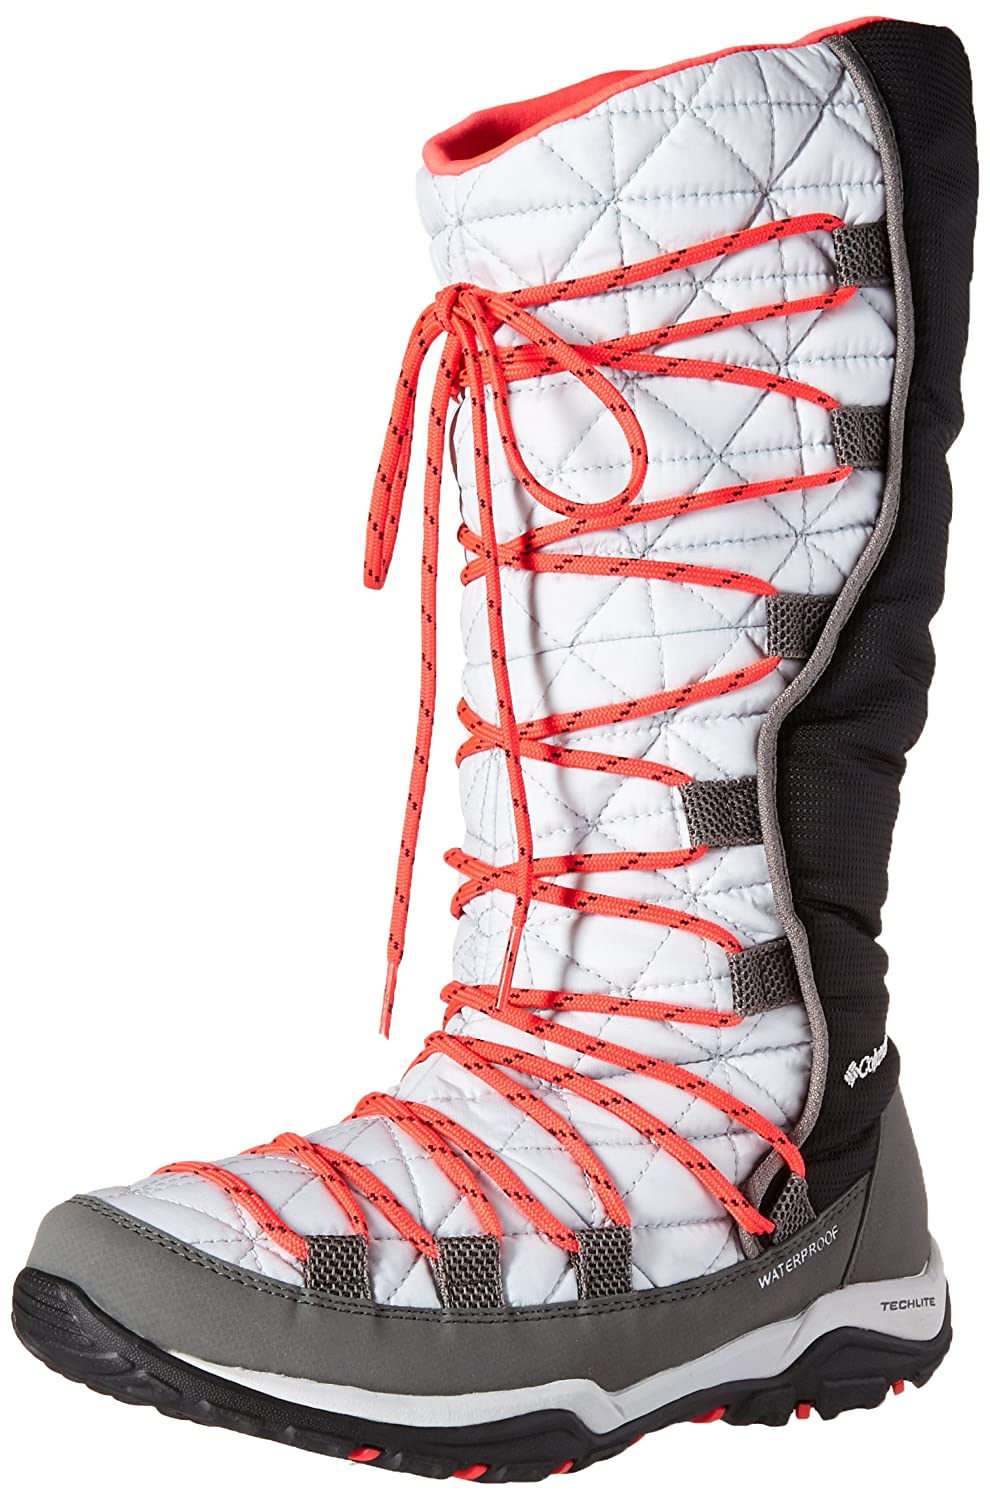 Columbia Women's Loveland Omni-Heat Snow Boot B0183O0VYO 6.5 B(M) US|Cool Grey, Laser Red